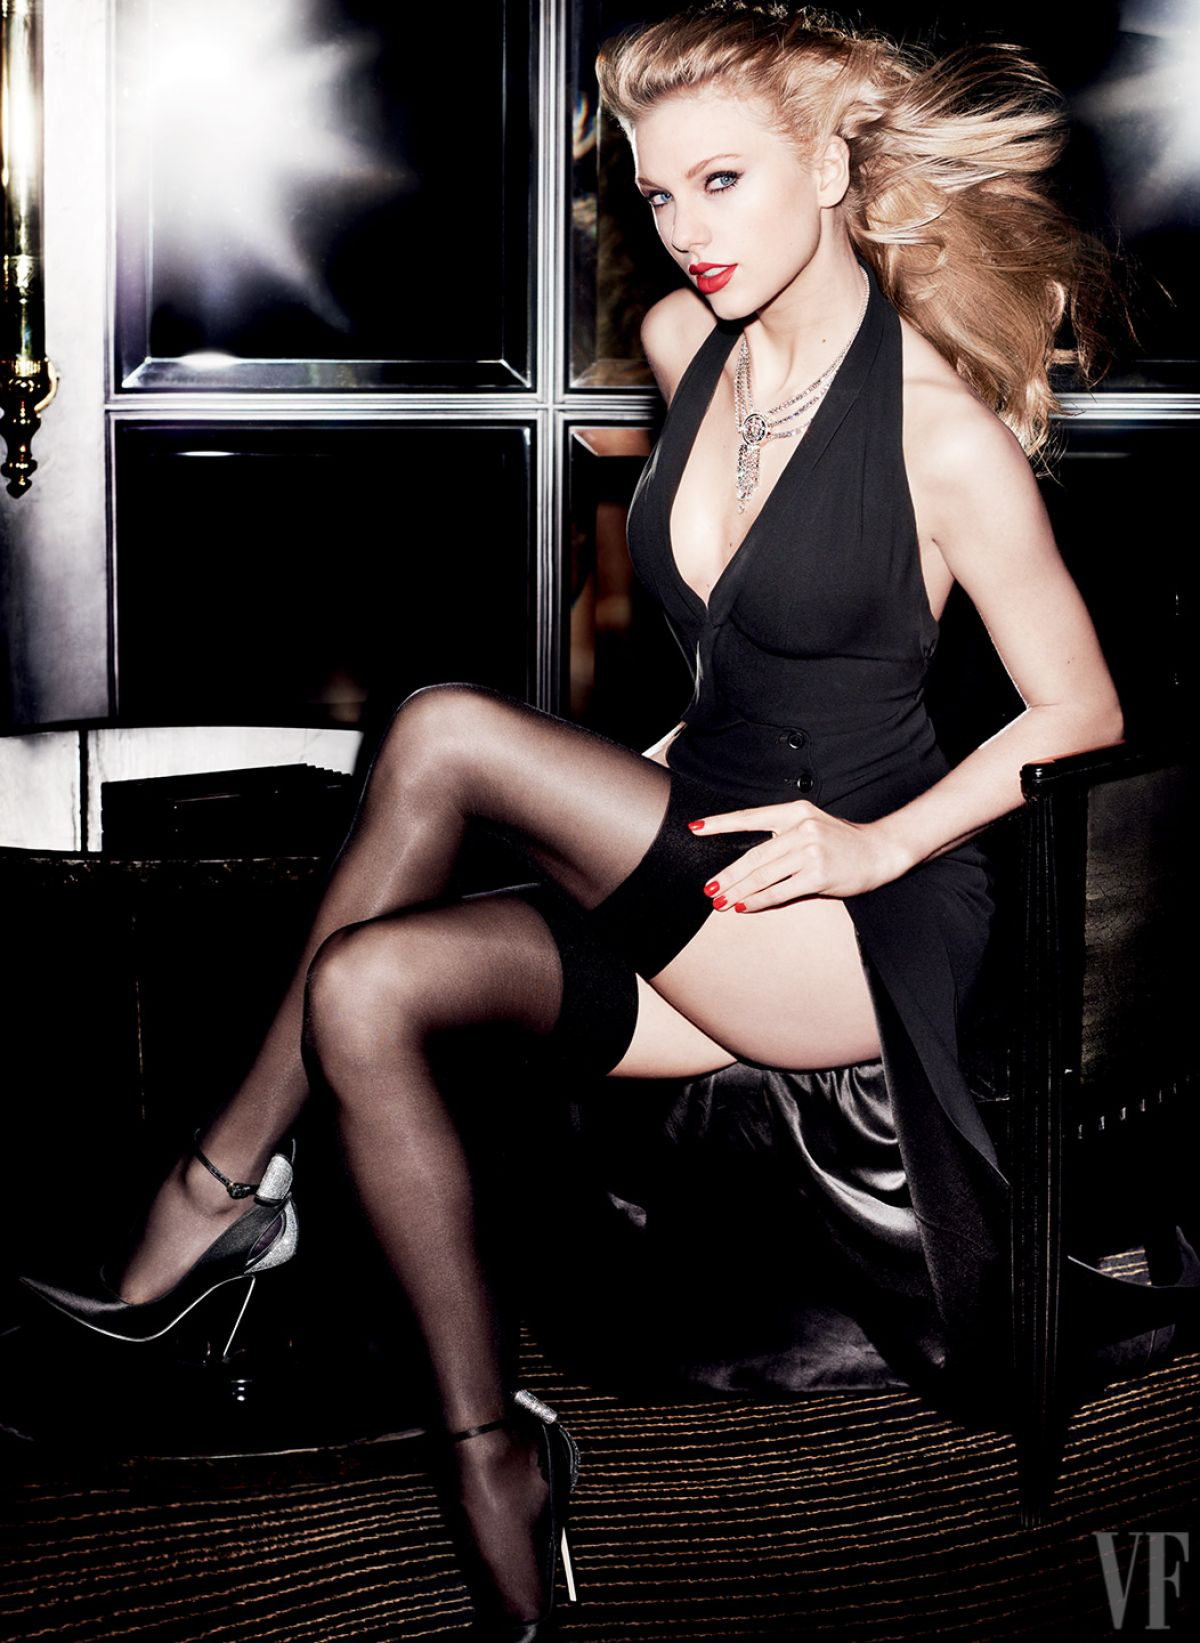 TAYLOR SWIFT for Vanity Fair Magazine by Mario Testino, September 2015 Issue